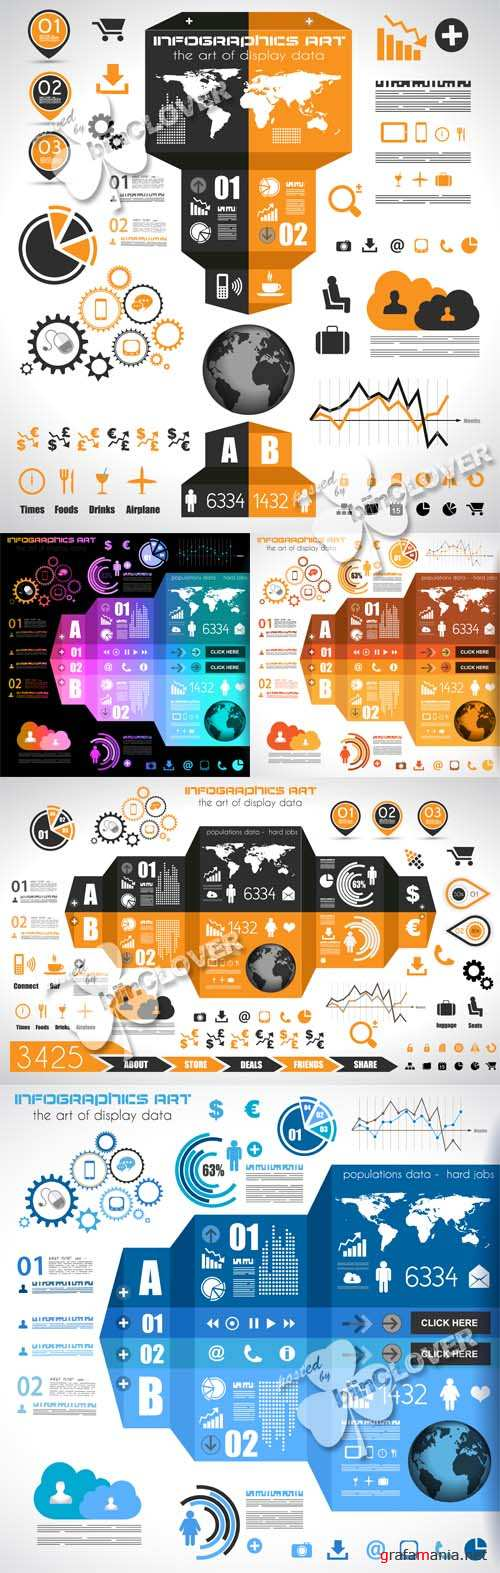 Infographic design elements and tags 0444